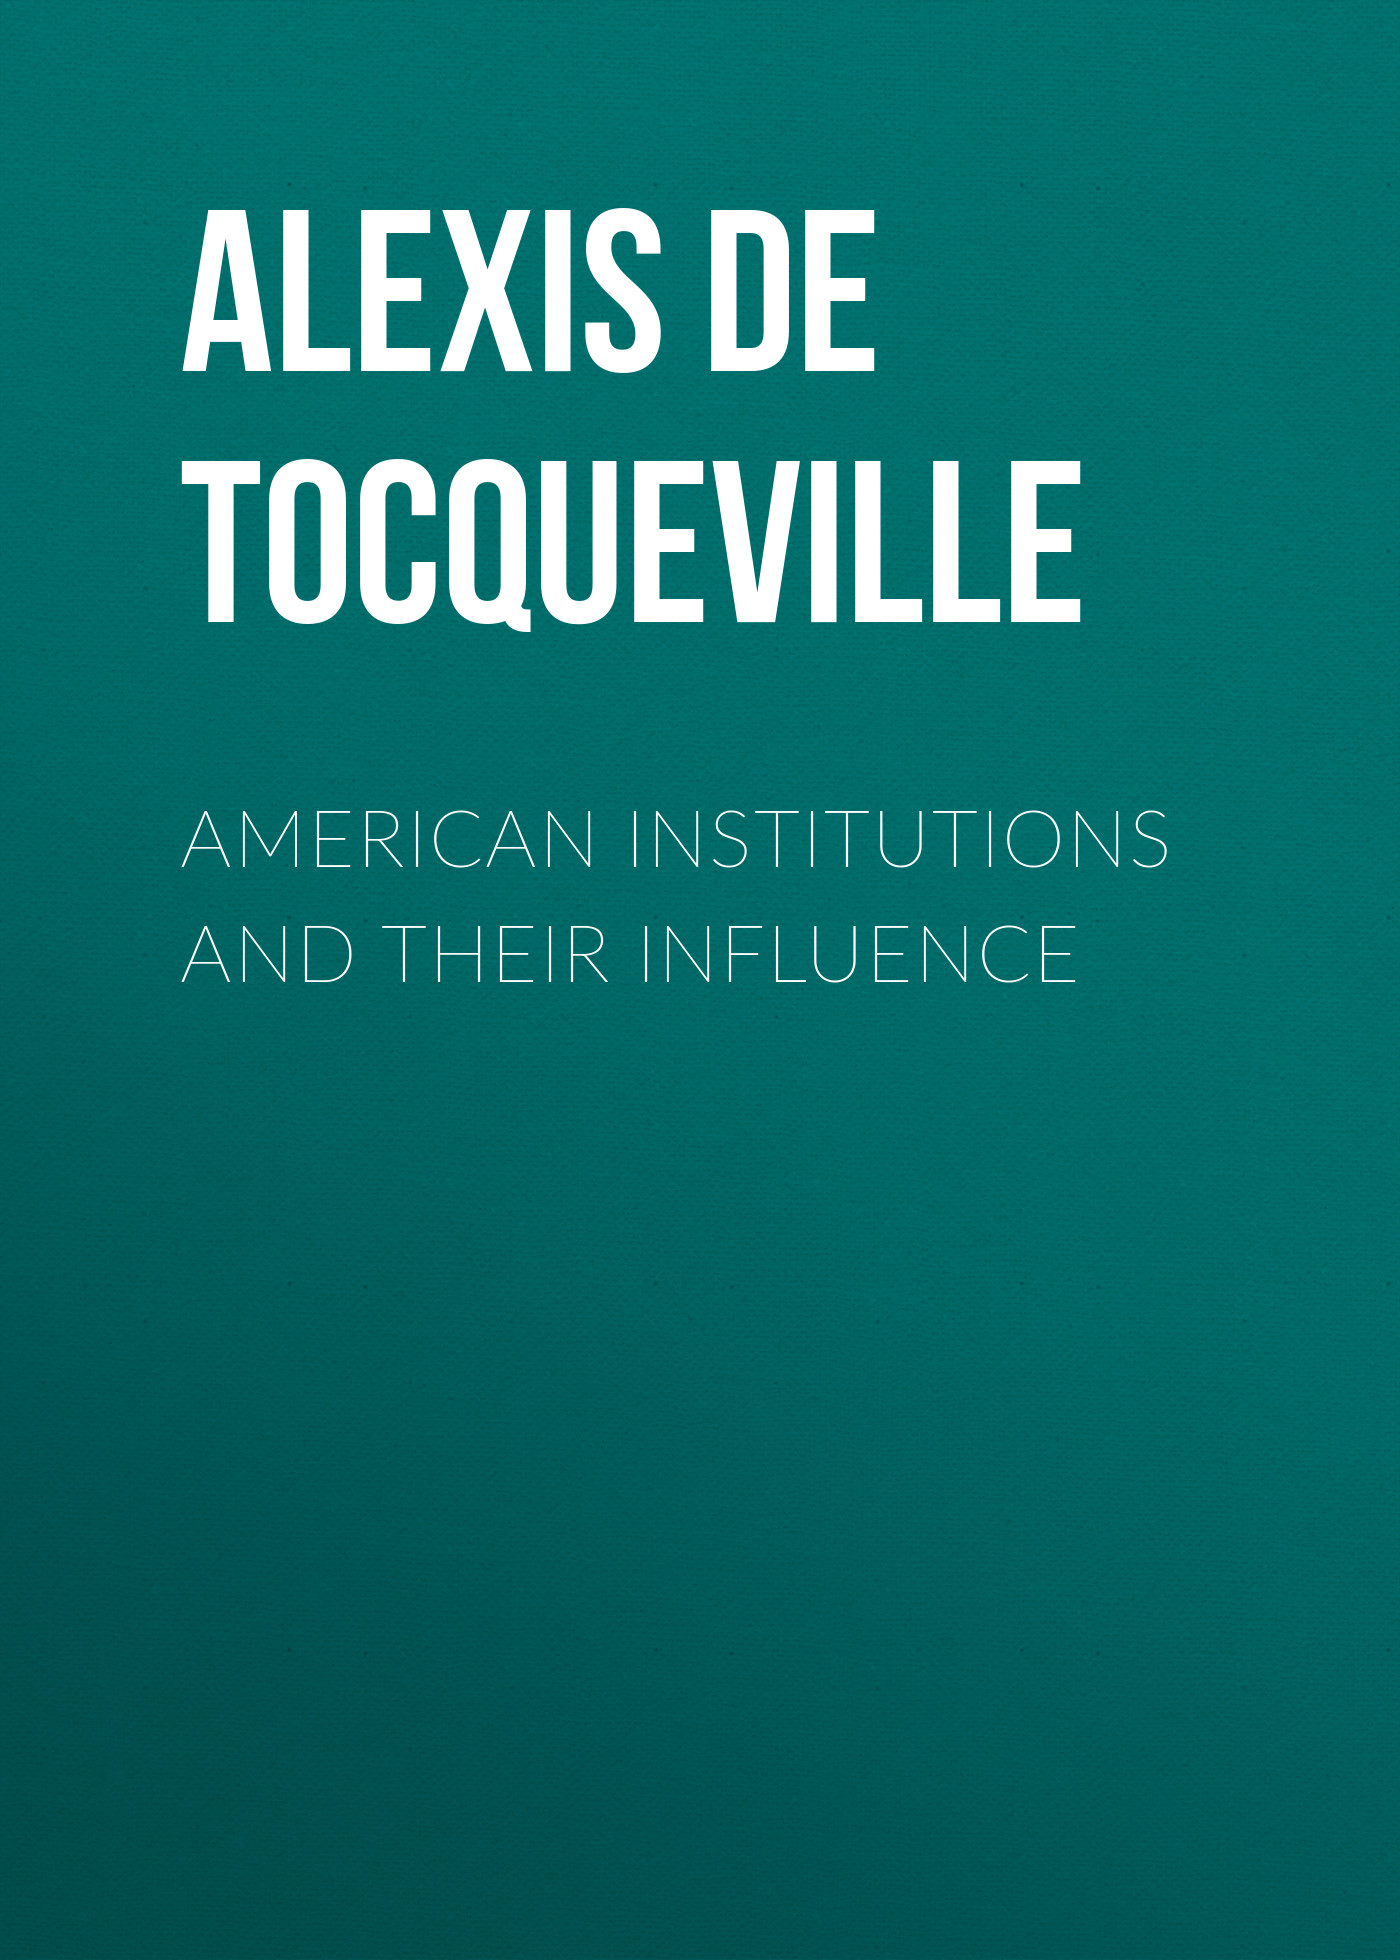 Alexis de Tocqueville American Institutions and Their Influence influence influence in009ewfic03